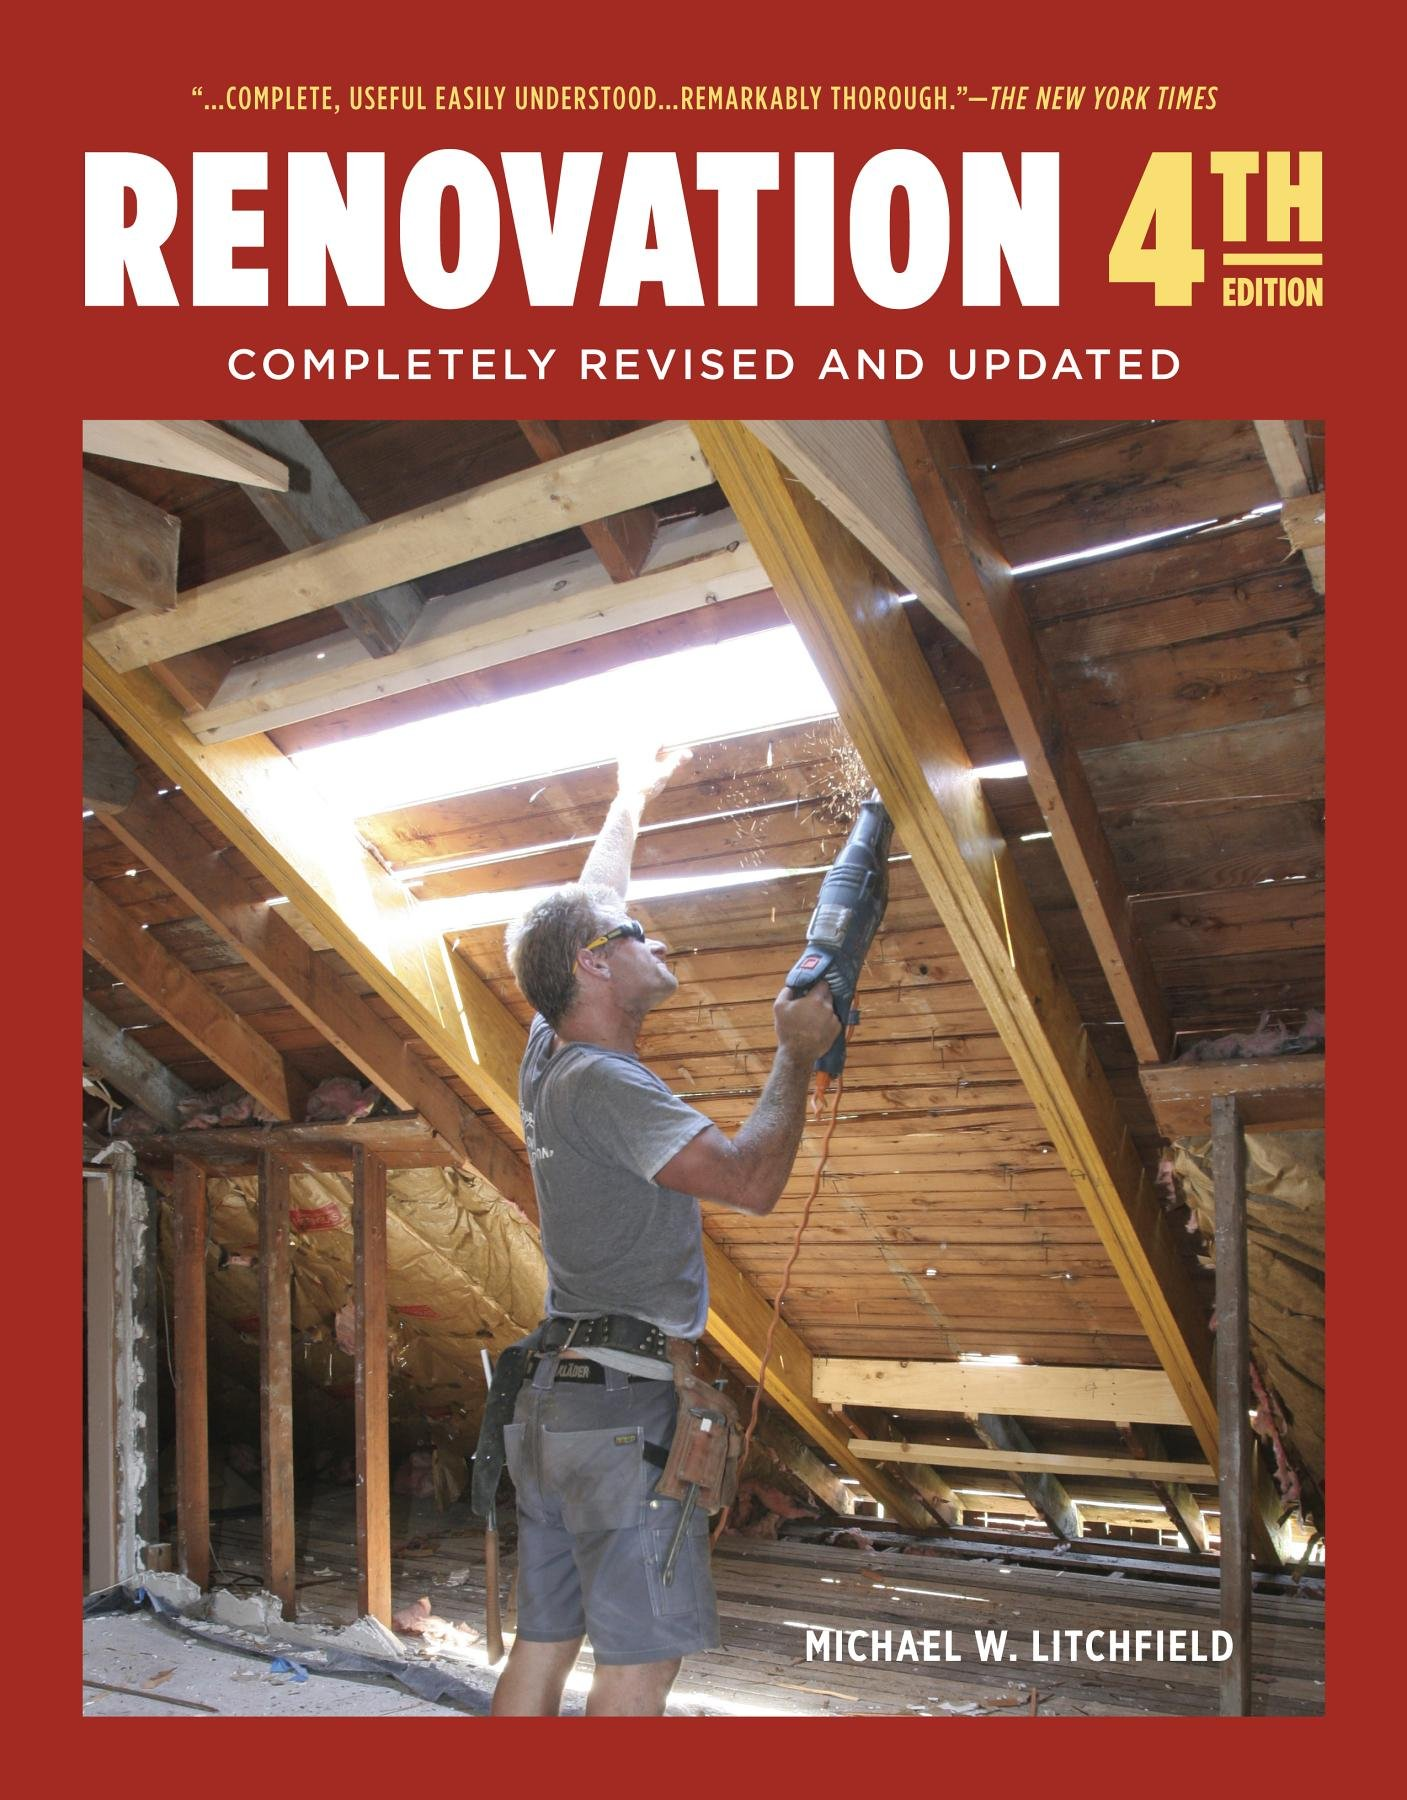 Renovation 4th Edition: Completely Revised and Updated pdf